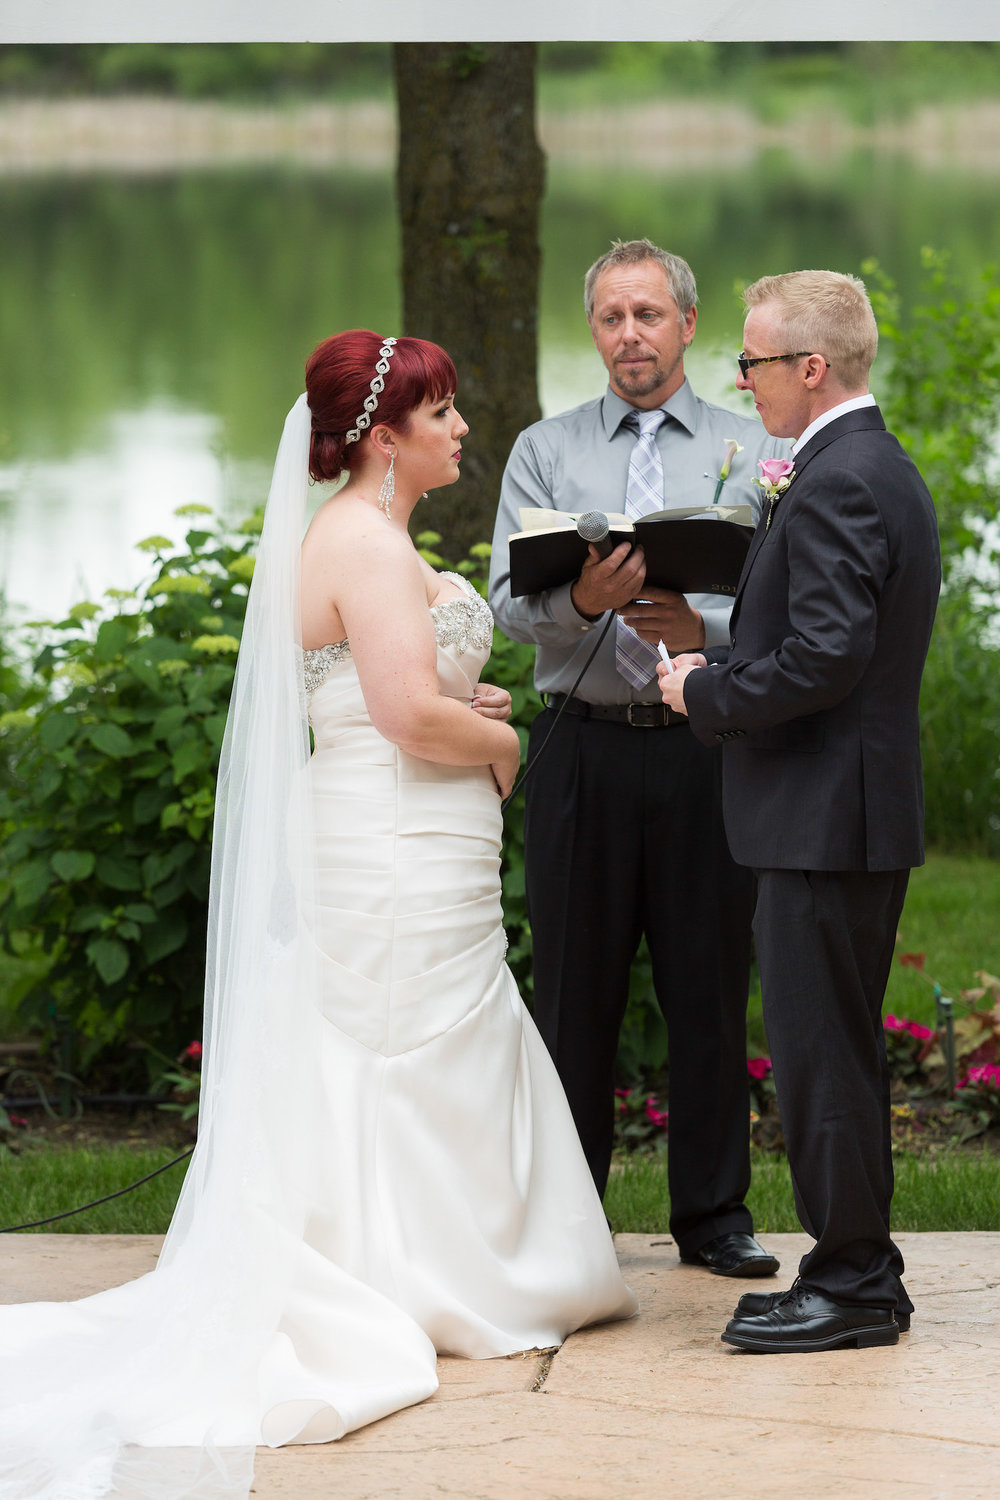 Cindyrella's Garden outdoor ceremony by the lake with a redhead bride, officiant